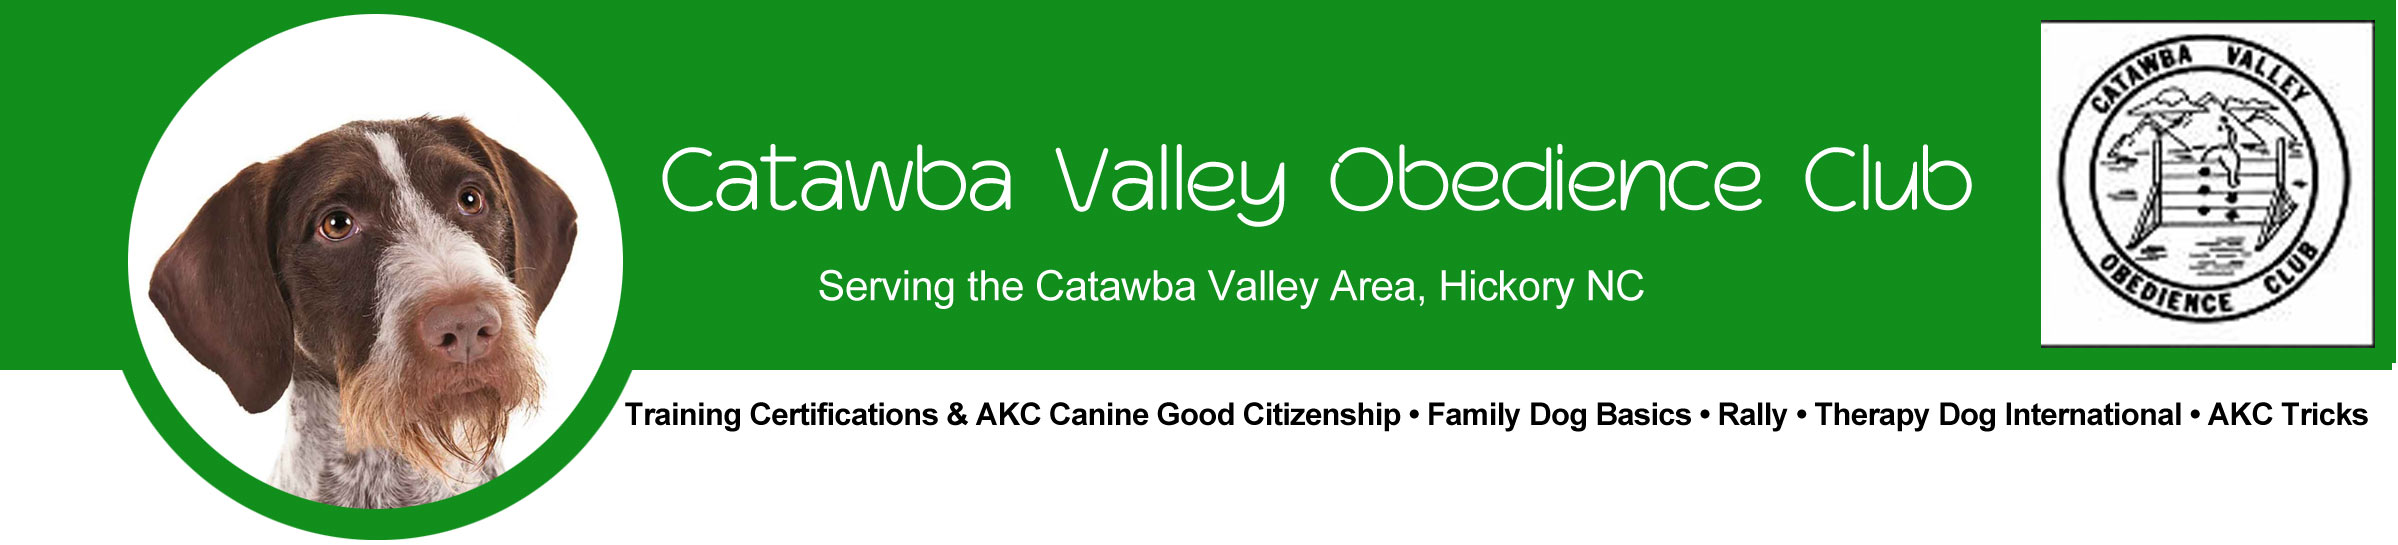 Catawba Valley Obedience Club, Hickory NC